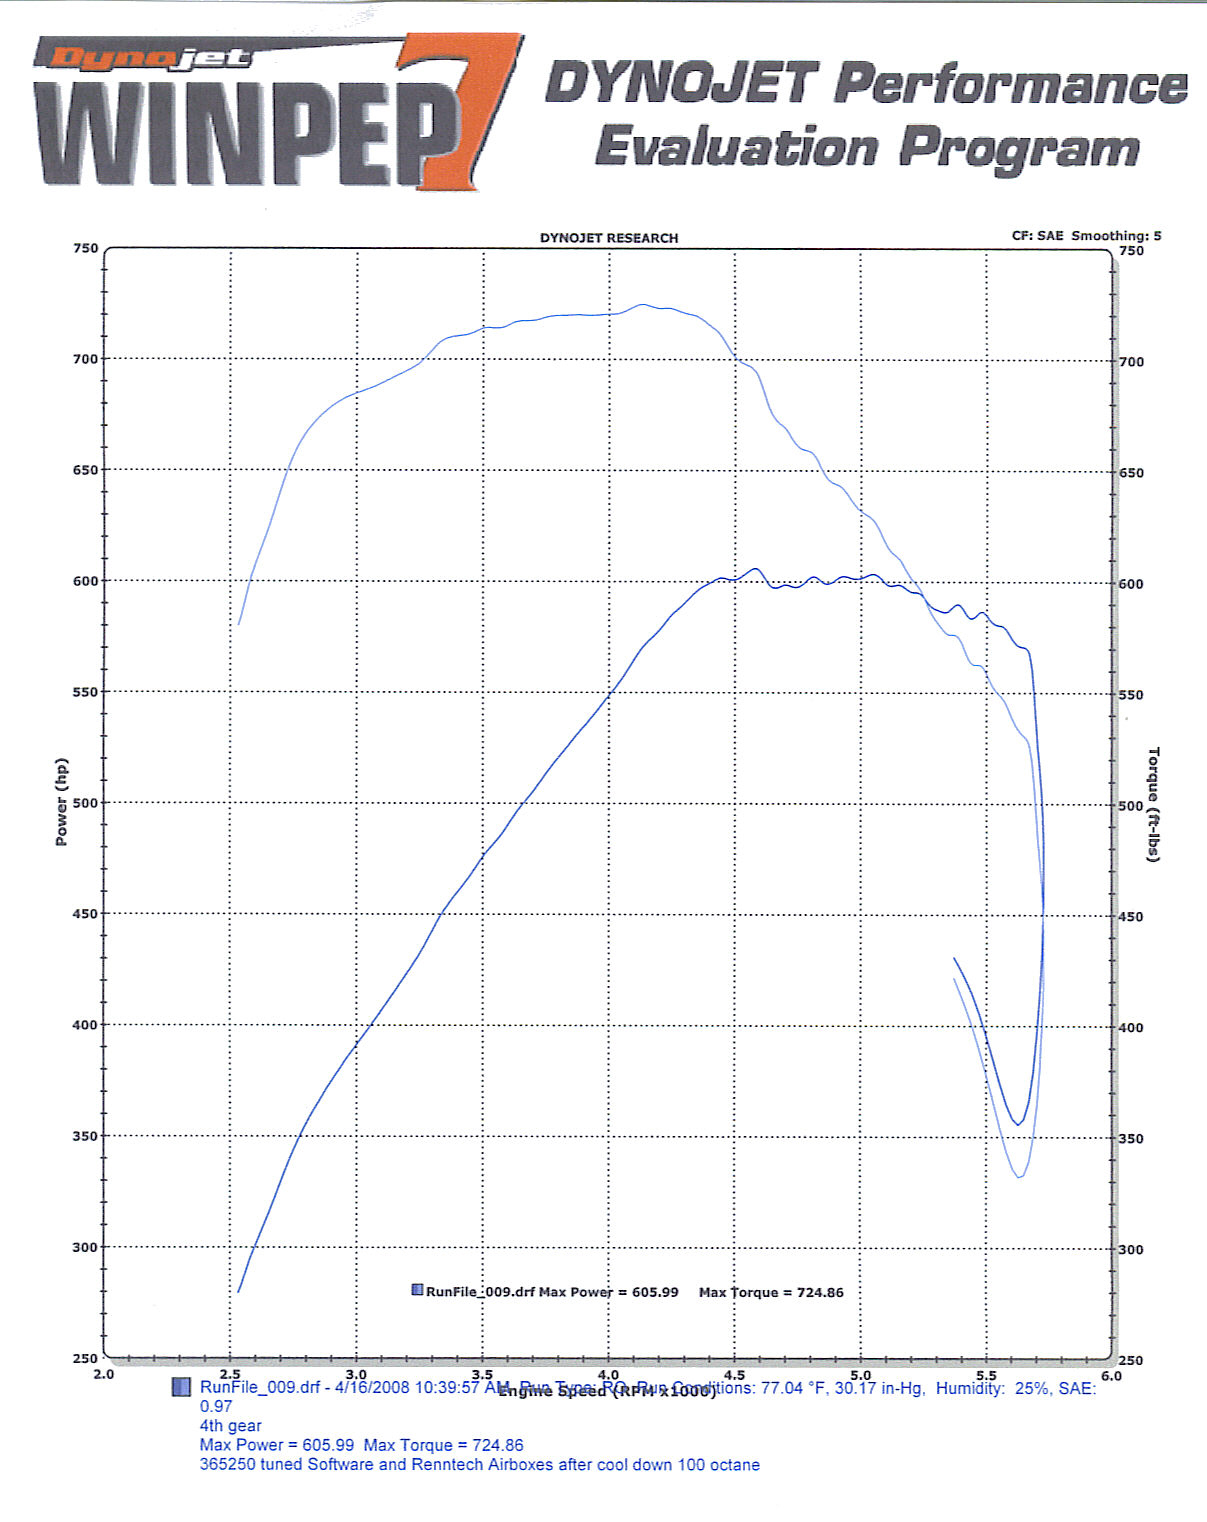 2006 Mercedes-Benz CL65 AMG RENNtech Dyno Results Graph